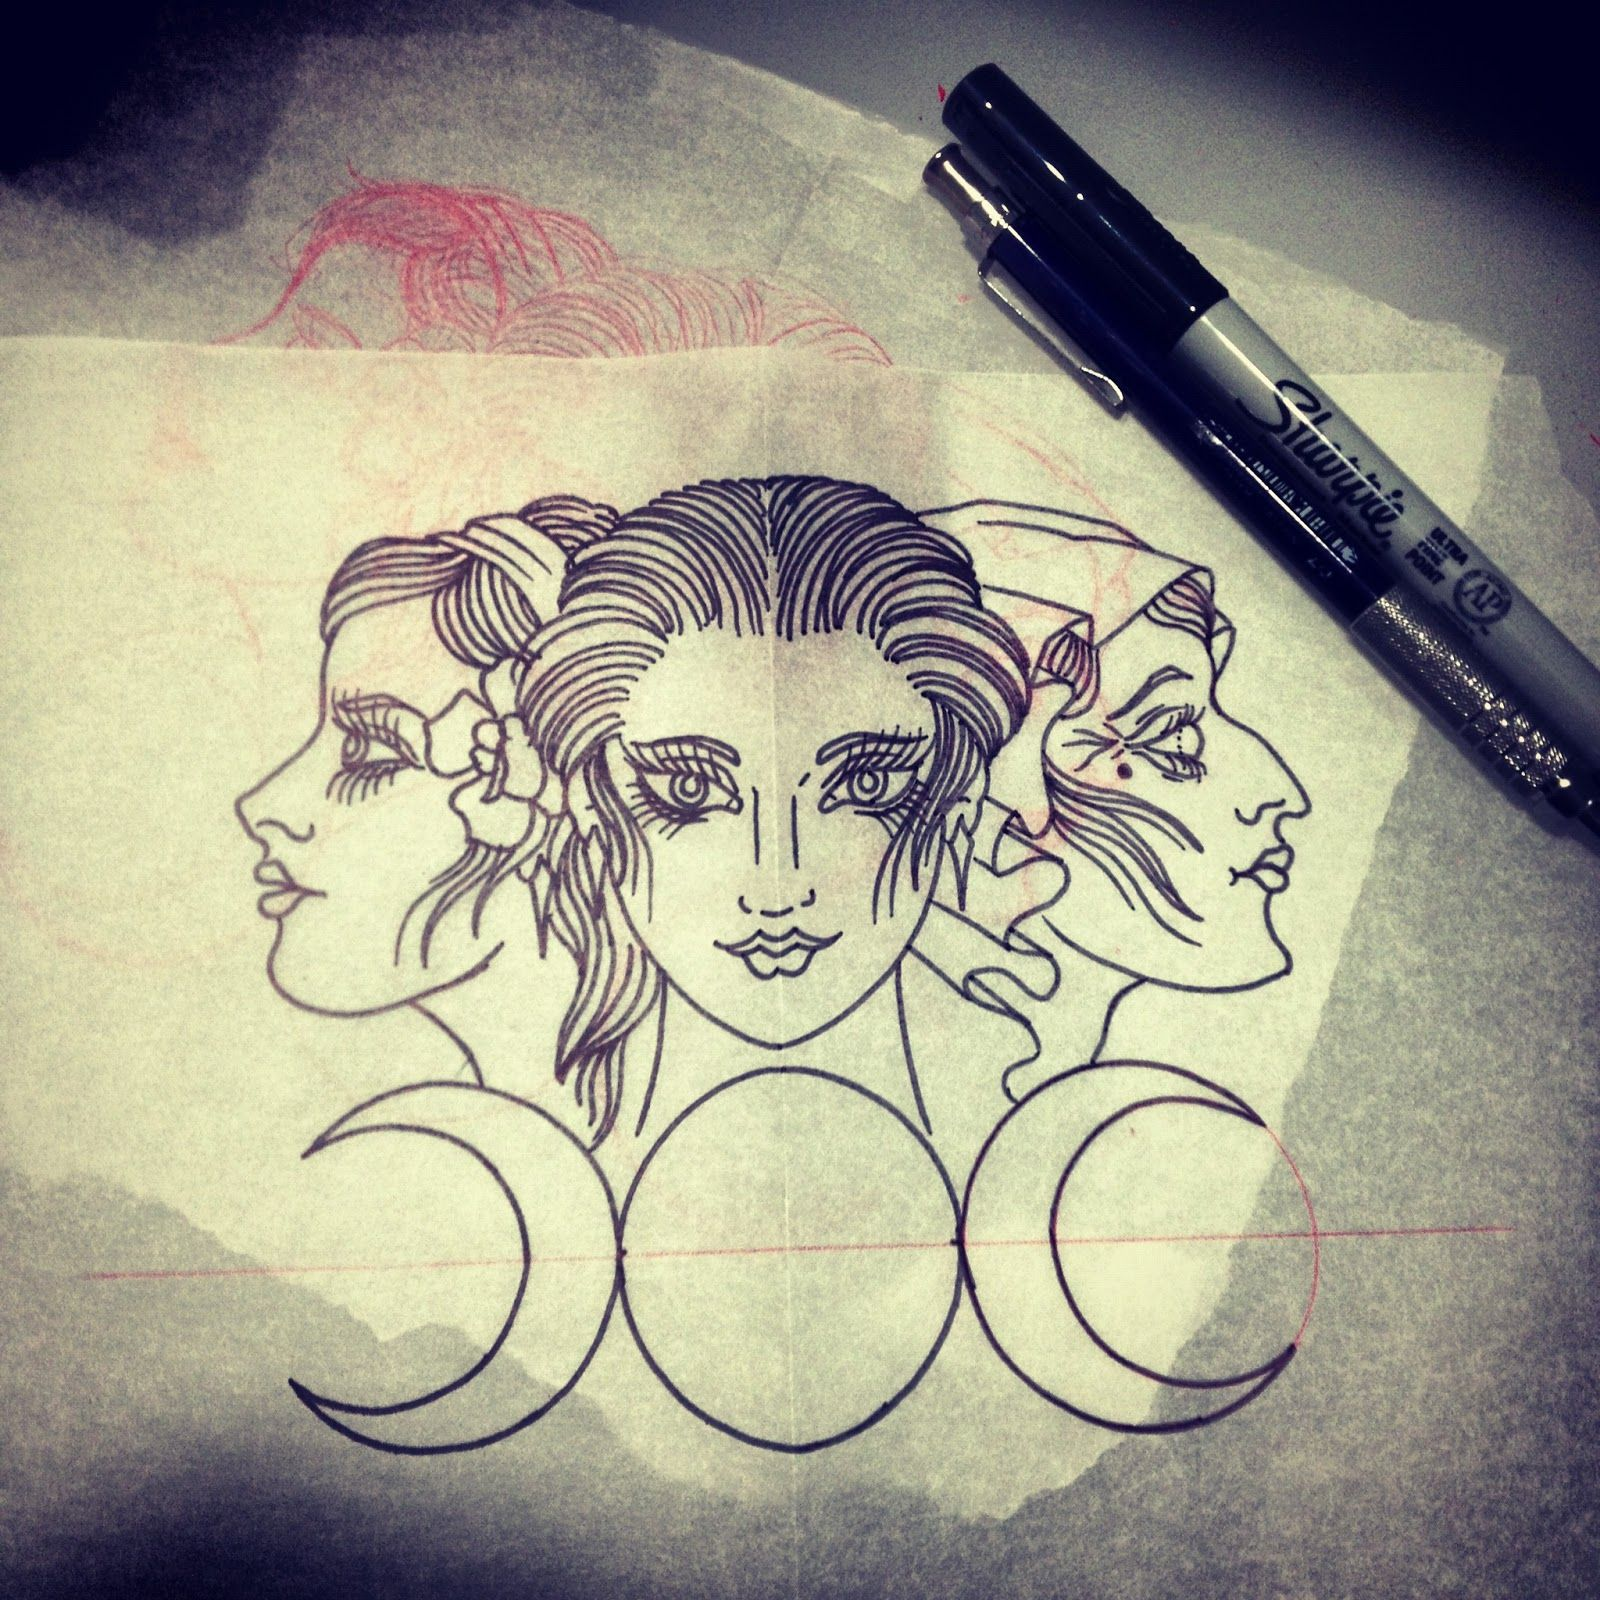 triple goddess tattoo google search tattoos pinterest rh pinterest com au triple goddess tattoo symbol triple goddess tattoo symbol meaning